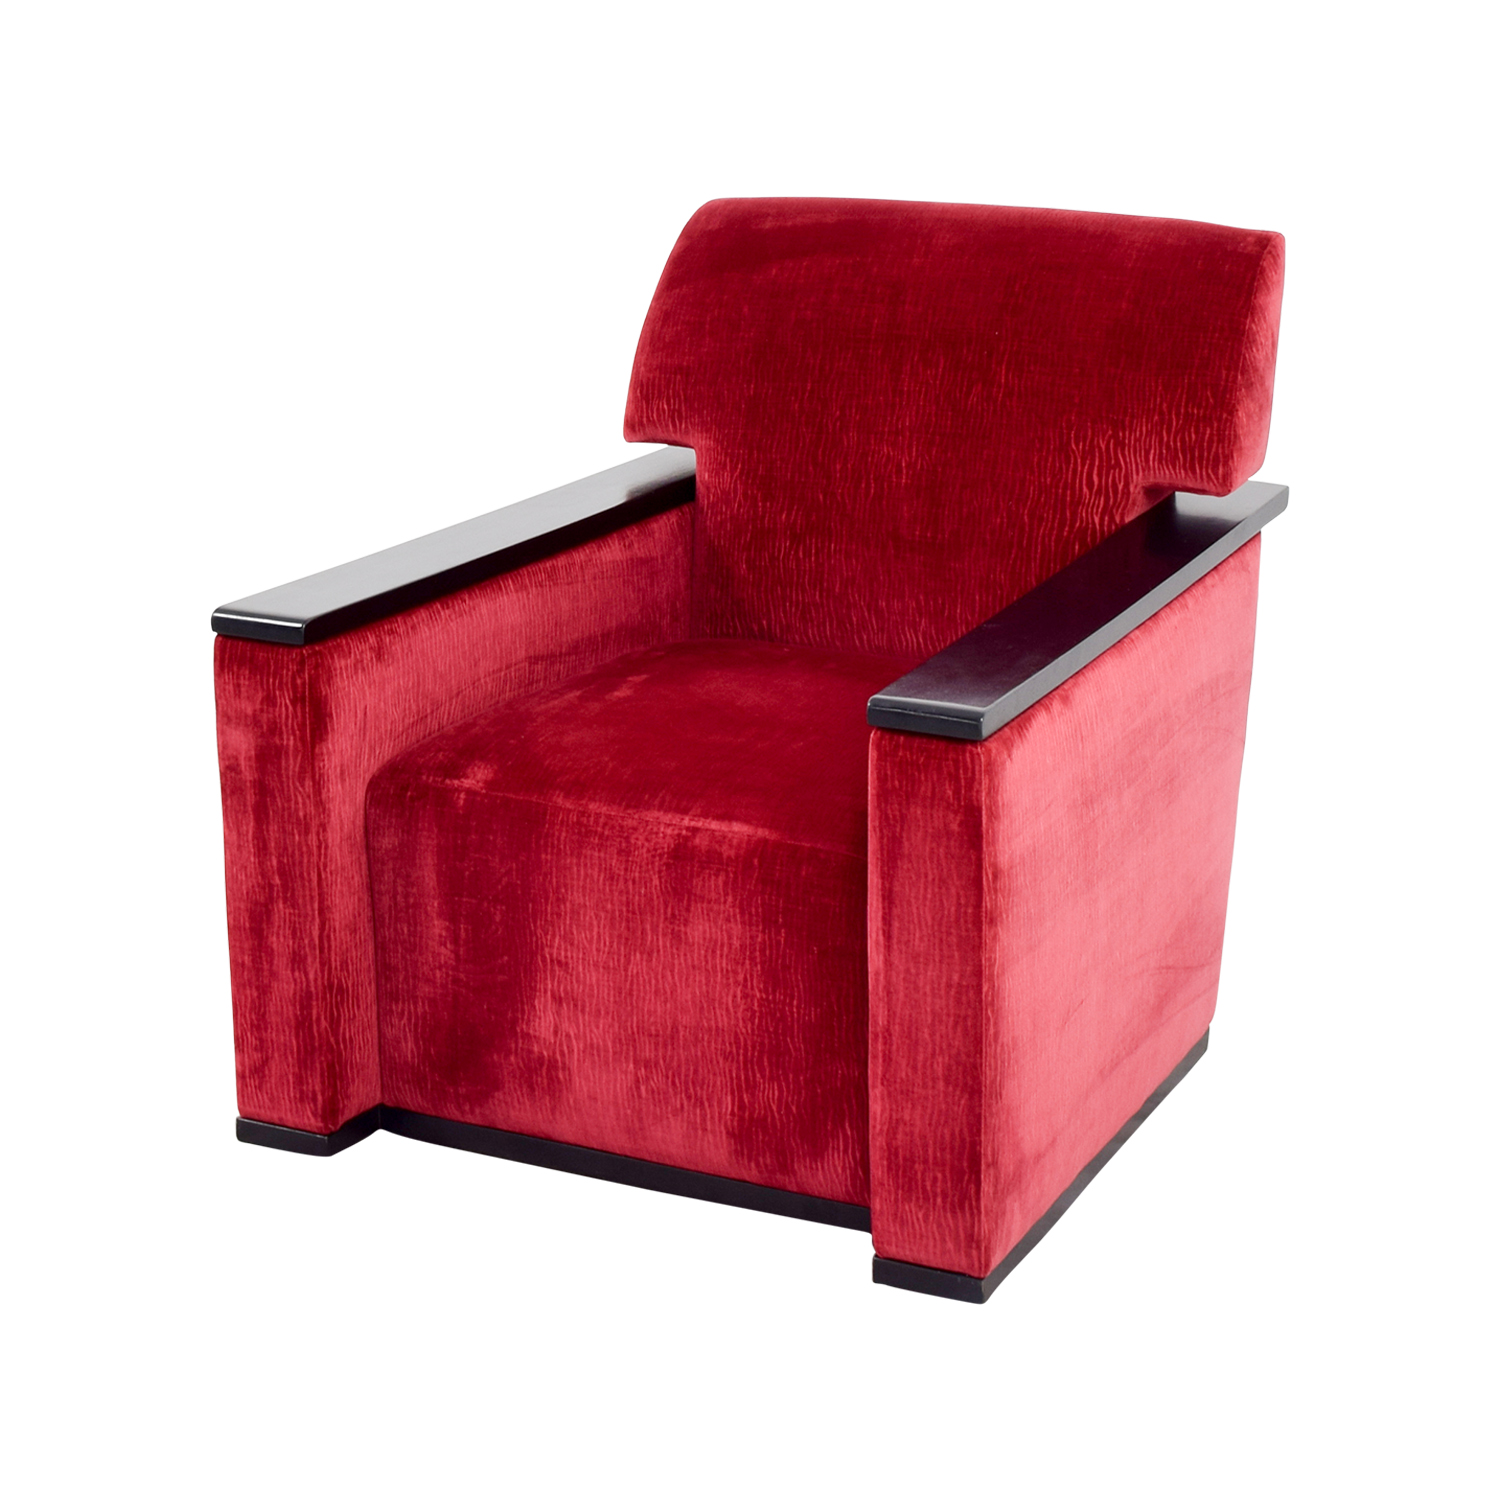 90 off red arm chair with black accents chairs for Furniture 90 off